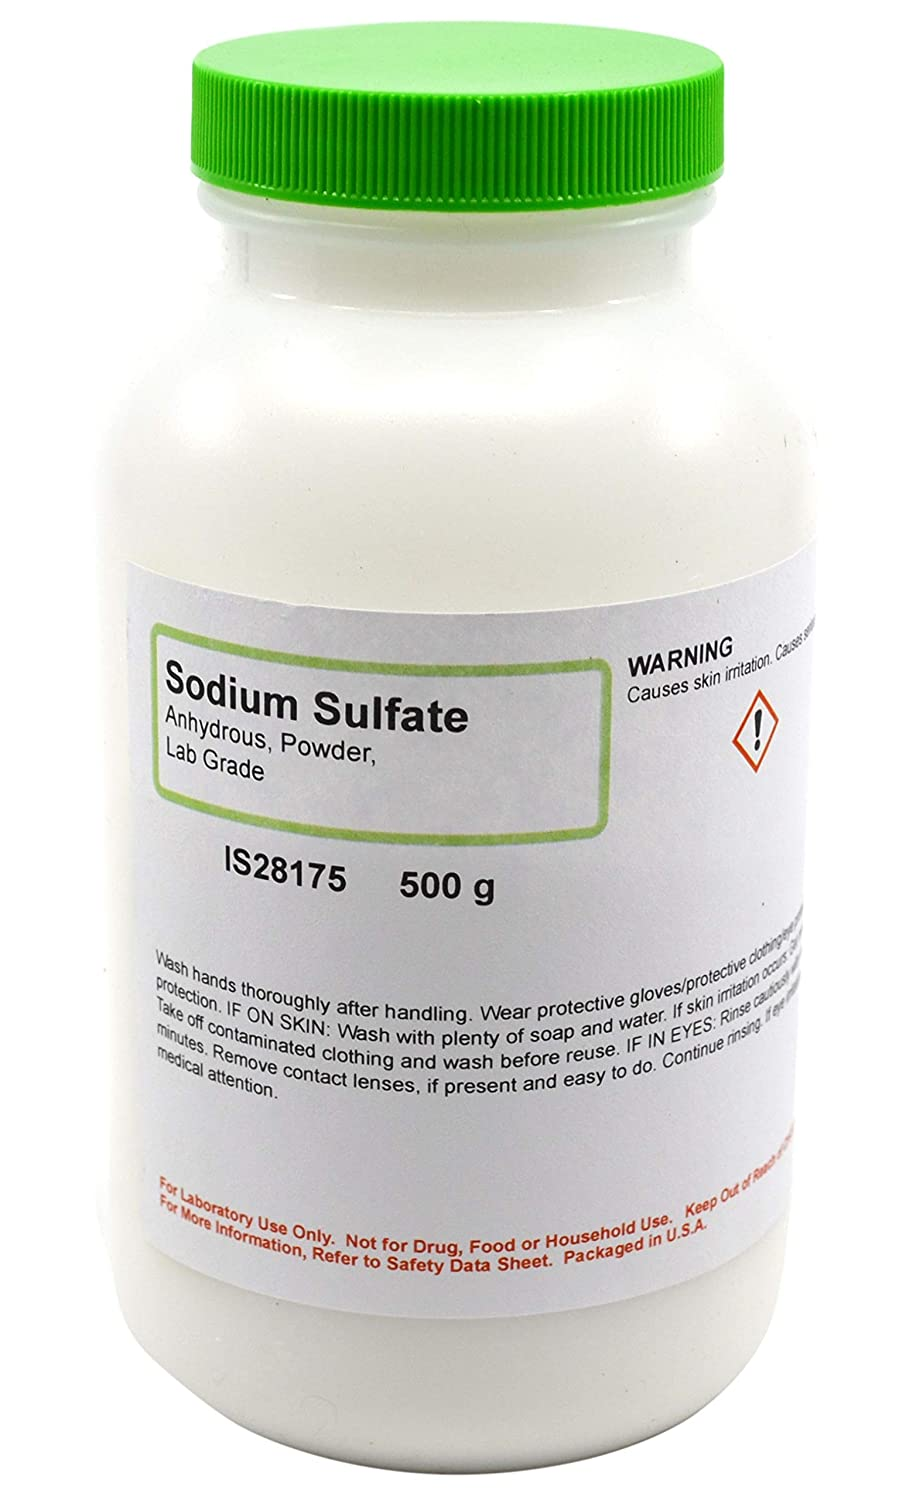 Laboratory-Grade Sodium Sulfate, Powder, Anhydrous, 500g - The Curated Chemical Collection